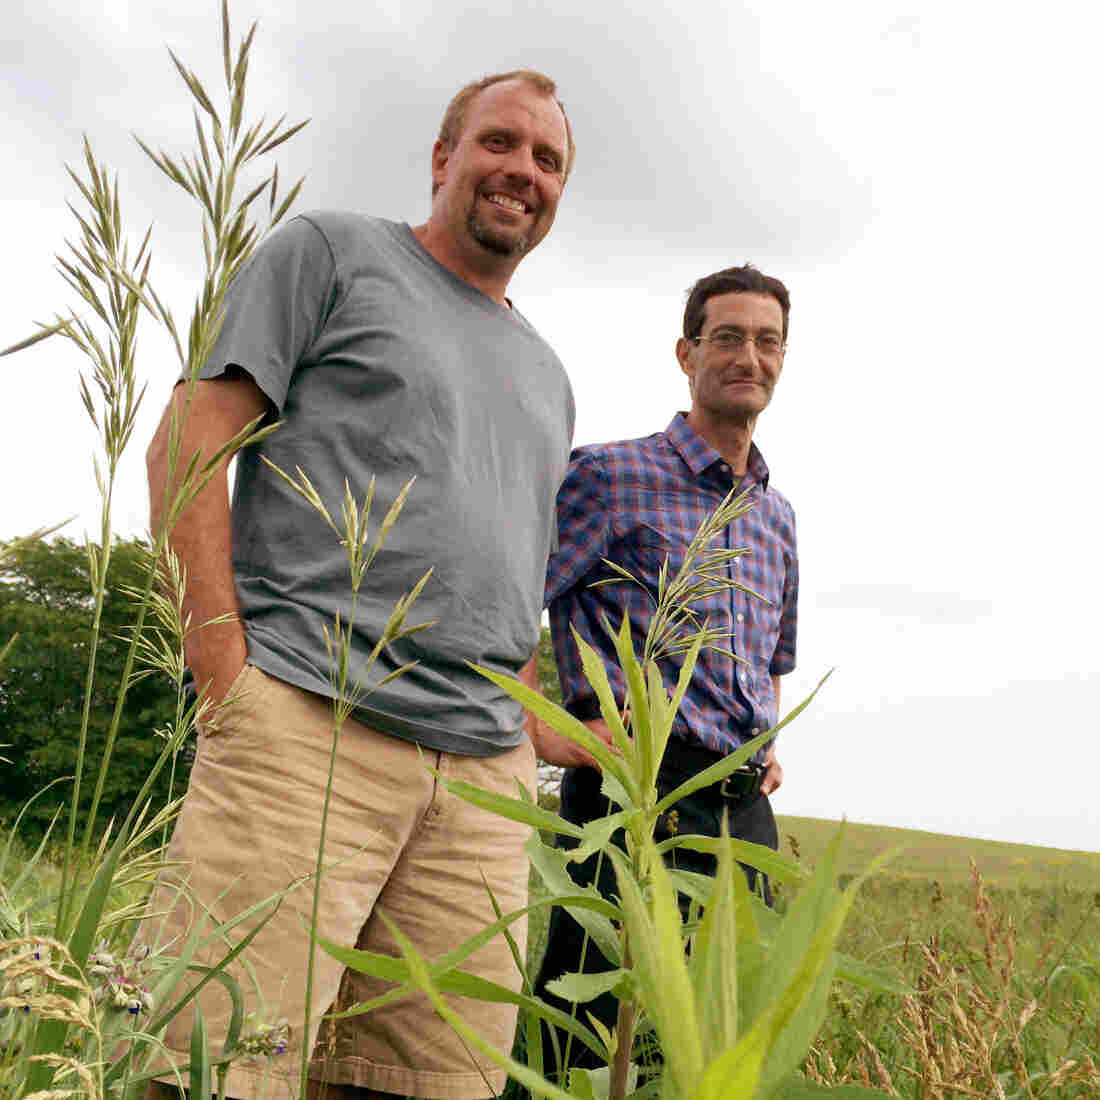 Iowa's Corn Farmers Learn To Adapt To Weather Extremes